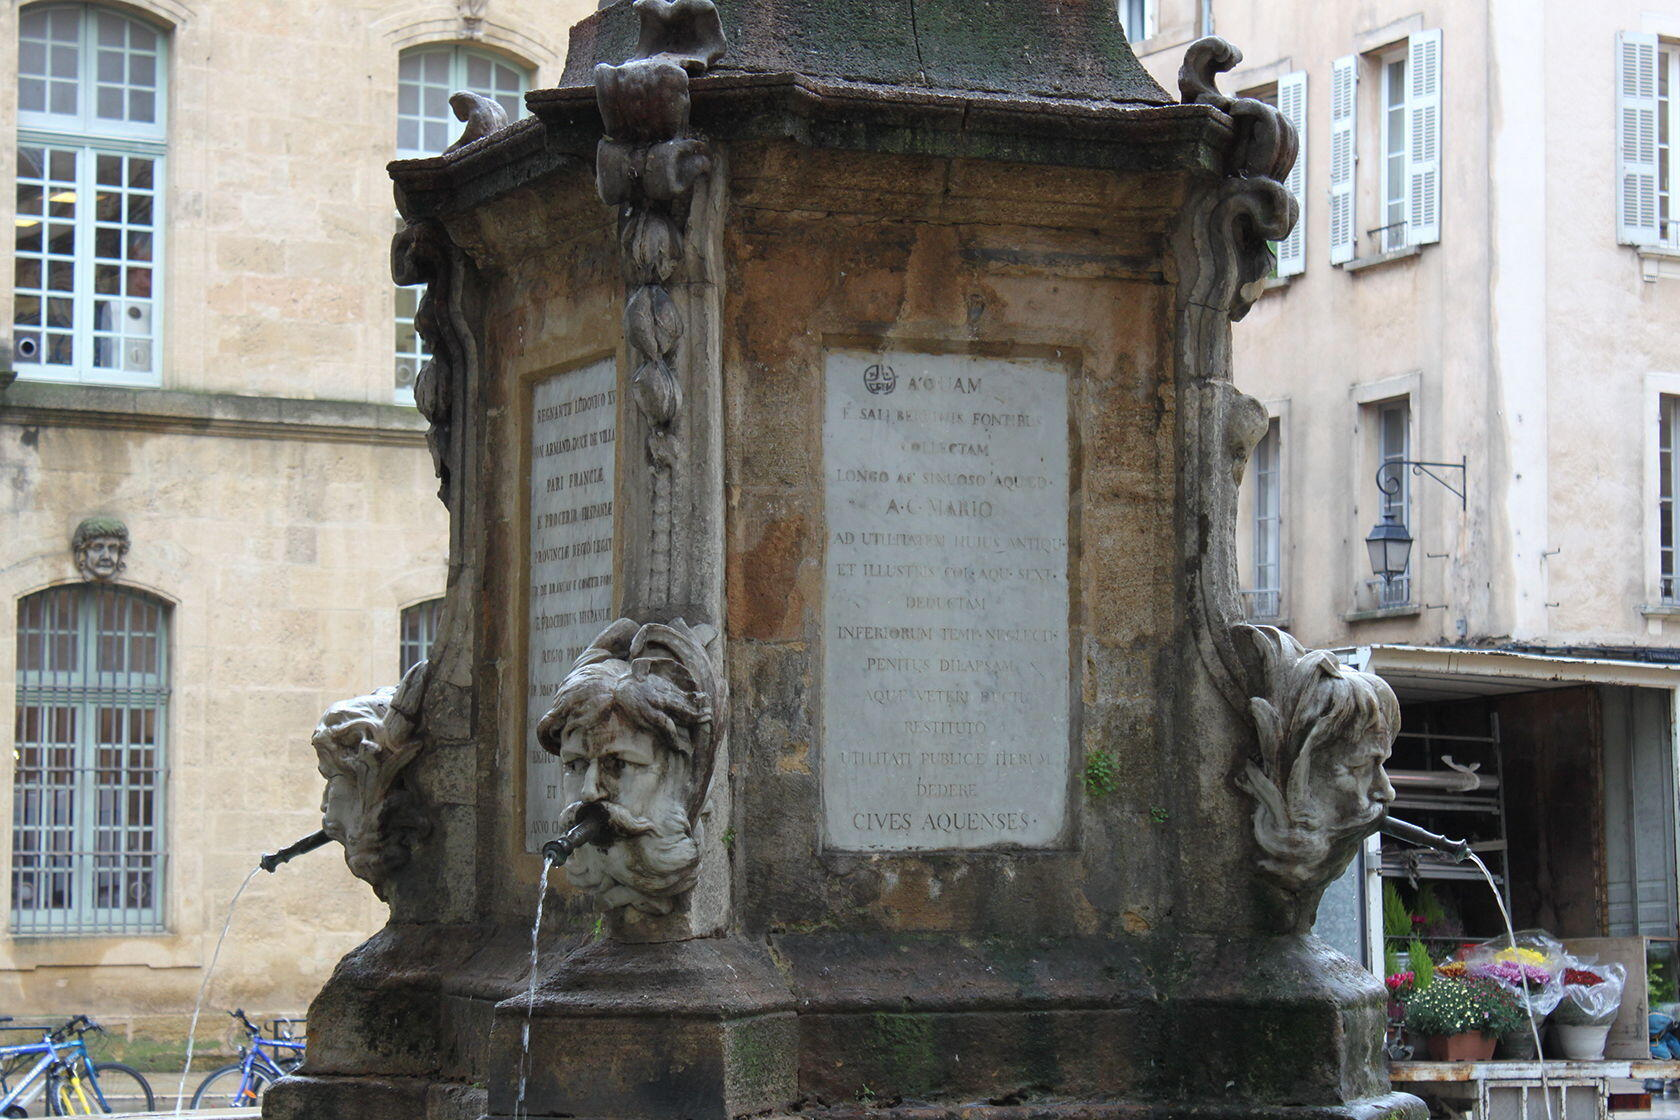 Stone Aix En Provence take a walking tour the fountains of aix-en-provence